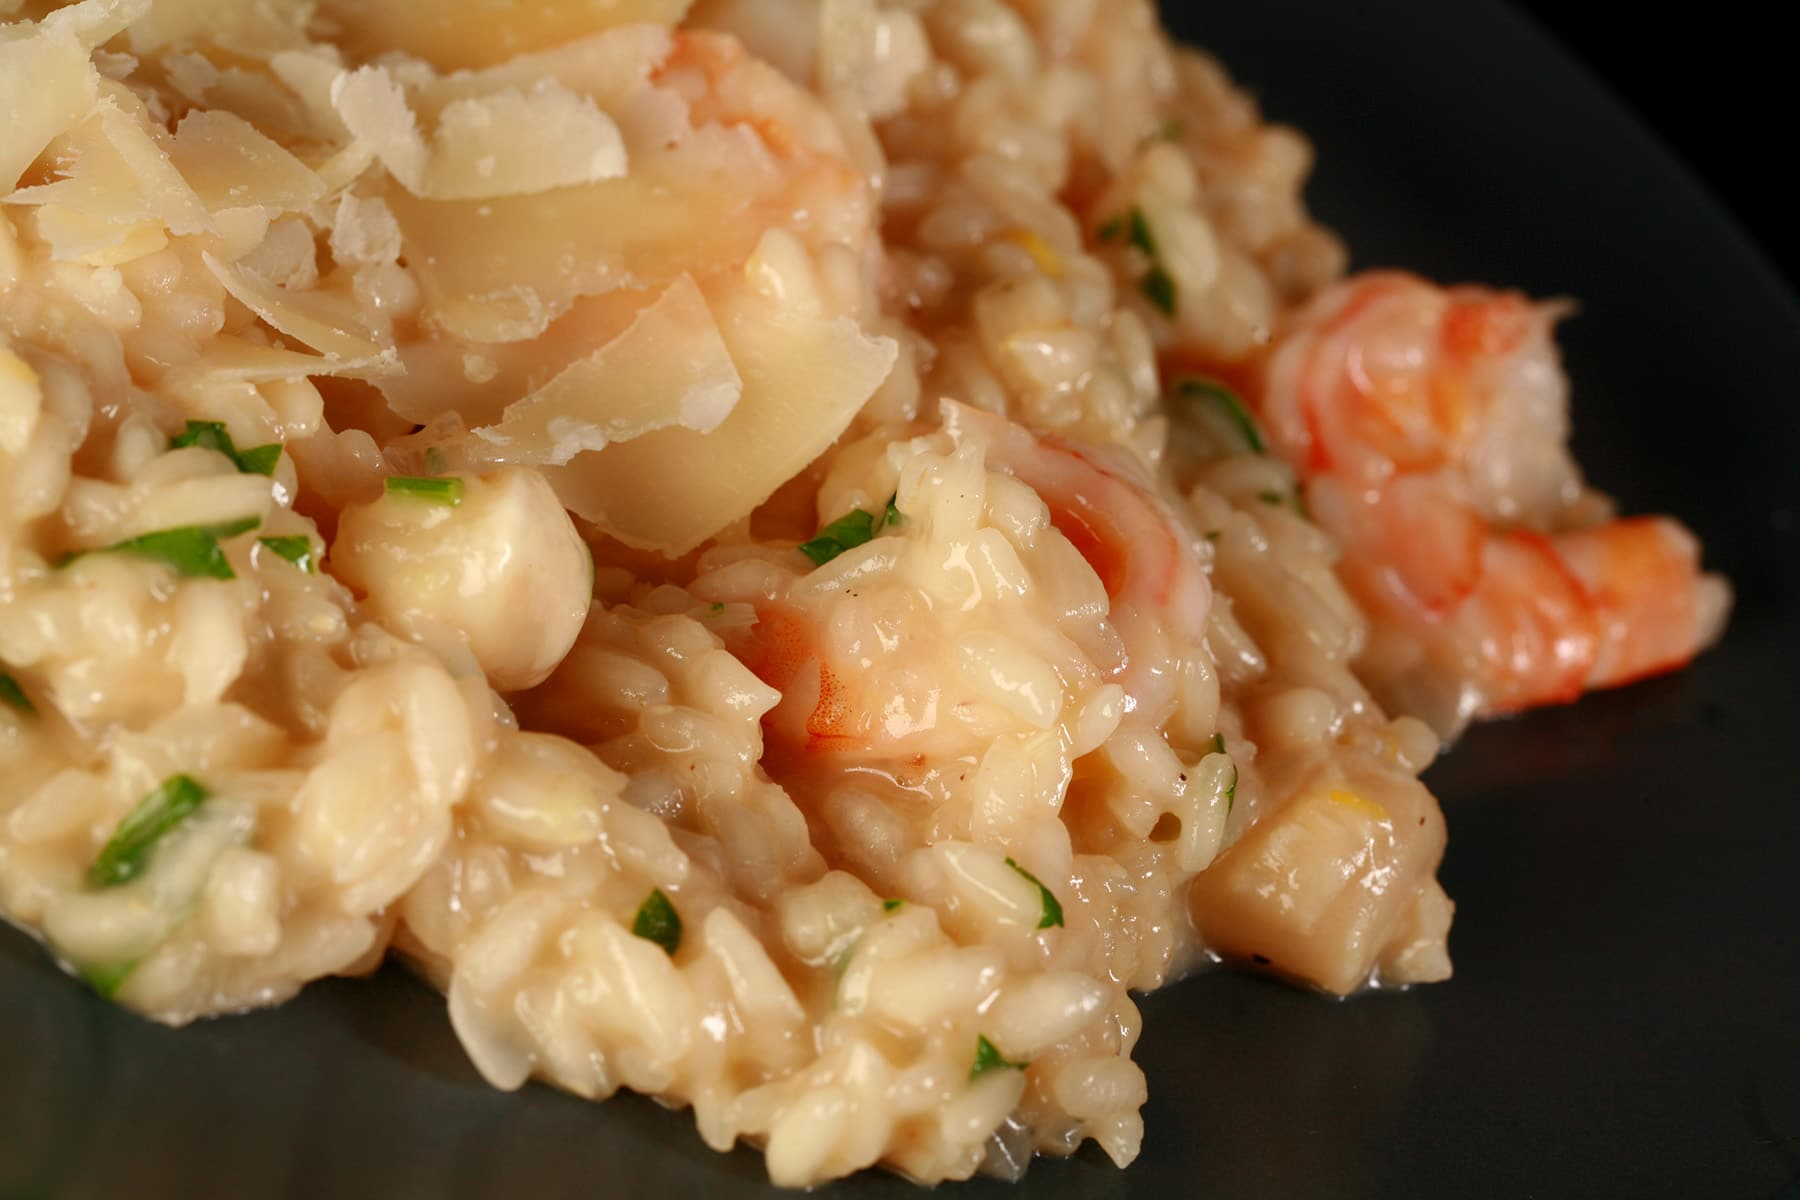 A close up view of seafood risotto on a plate.